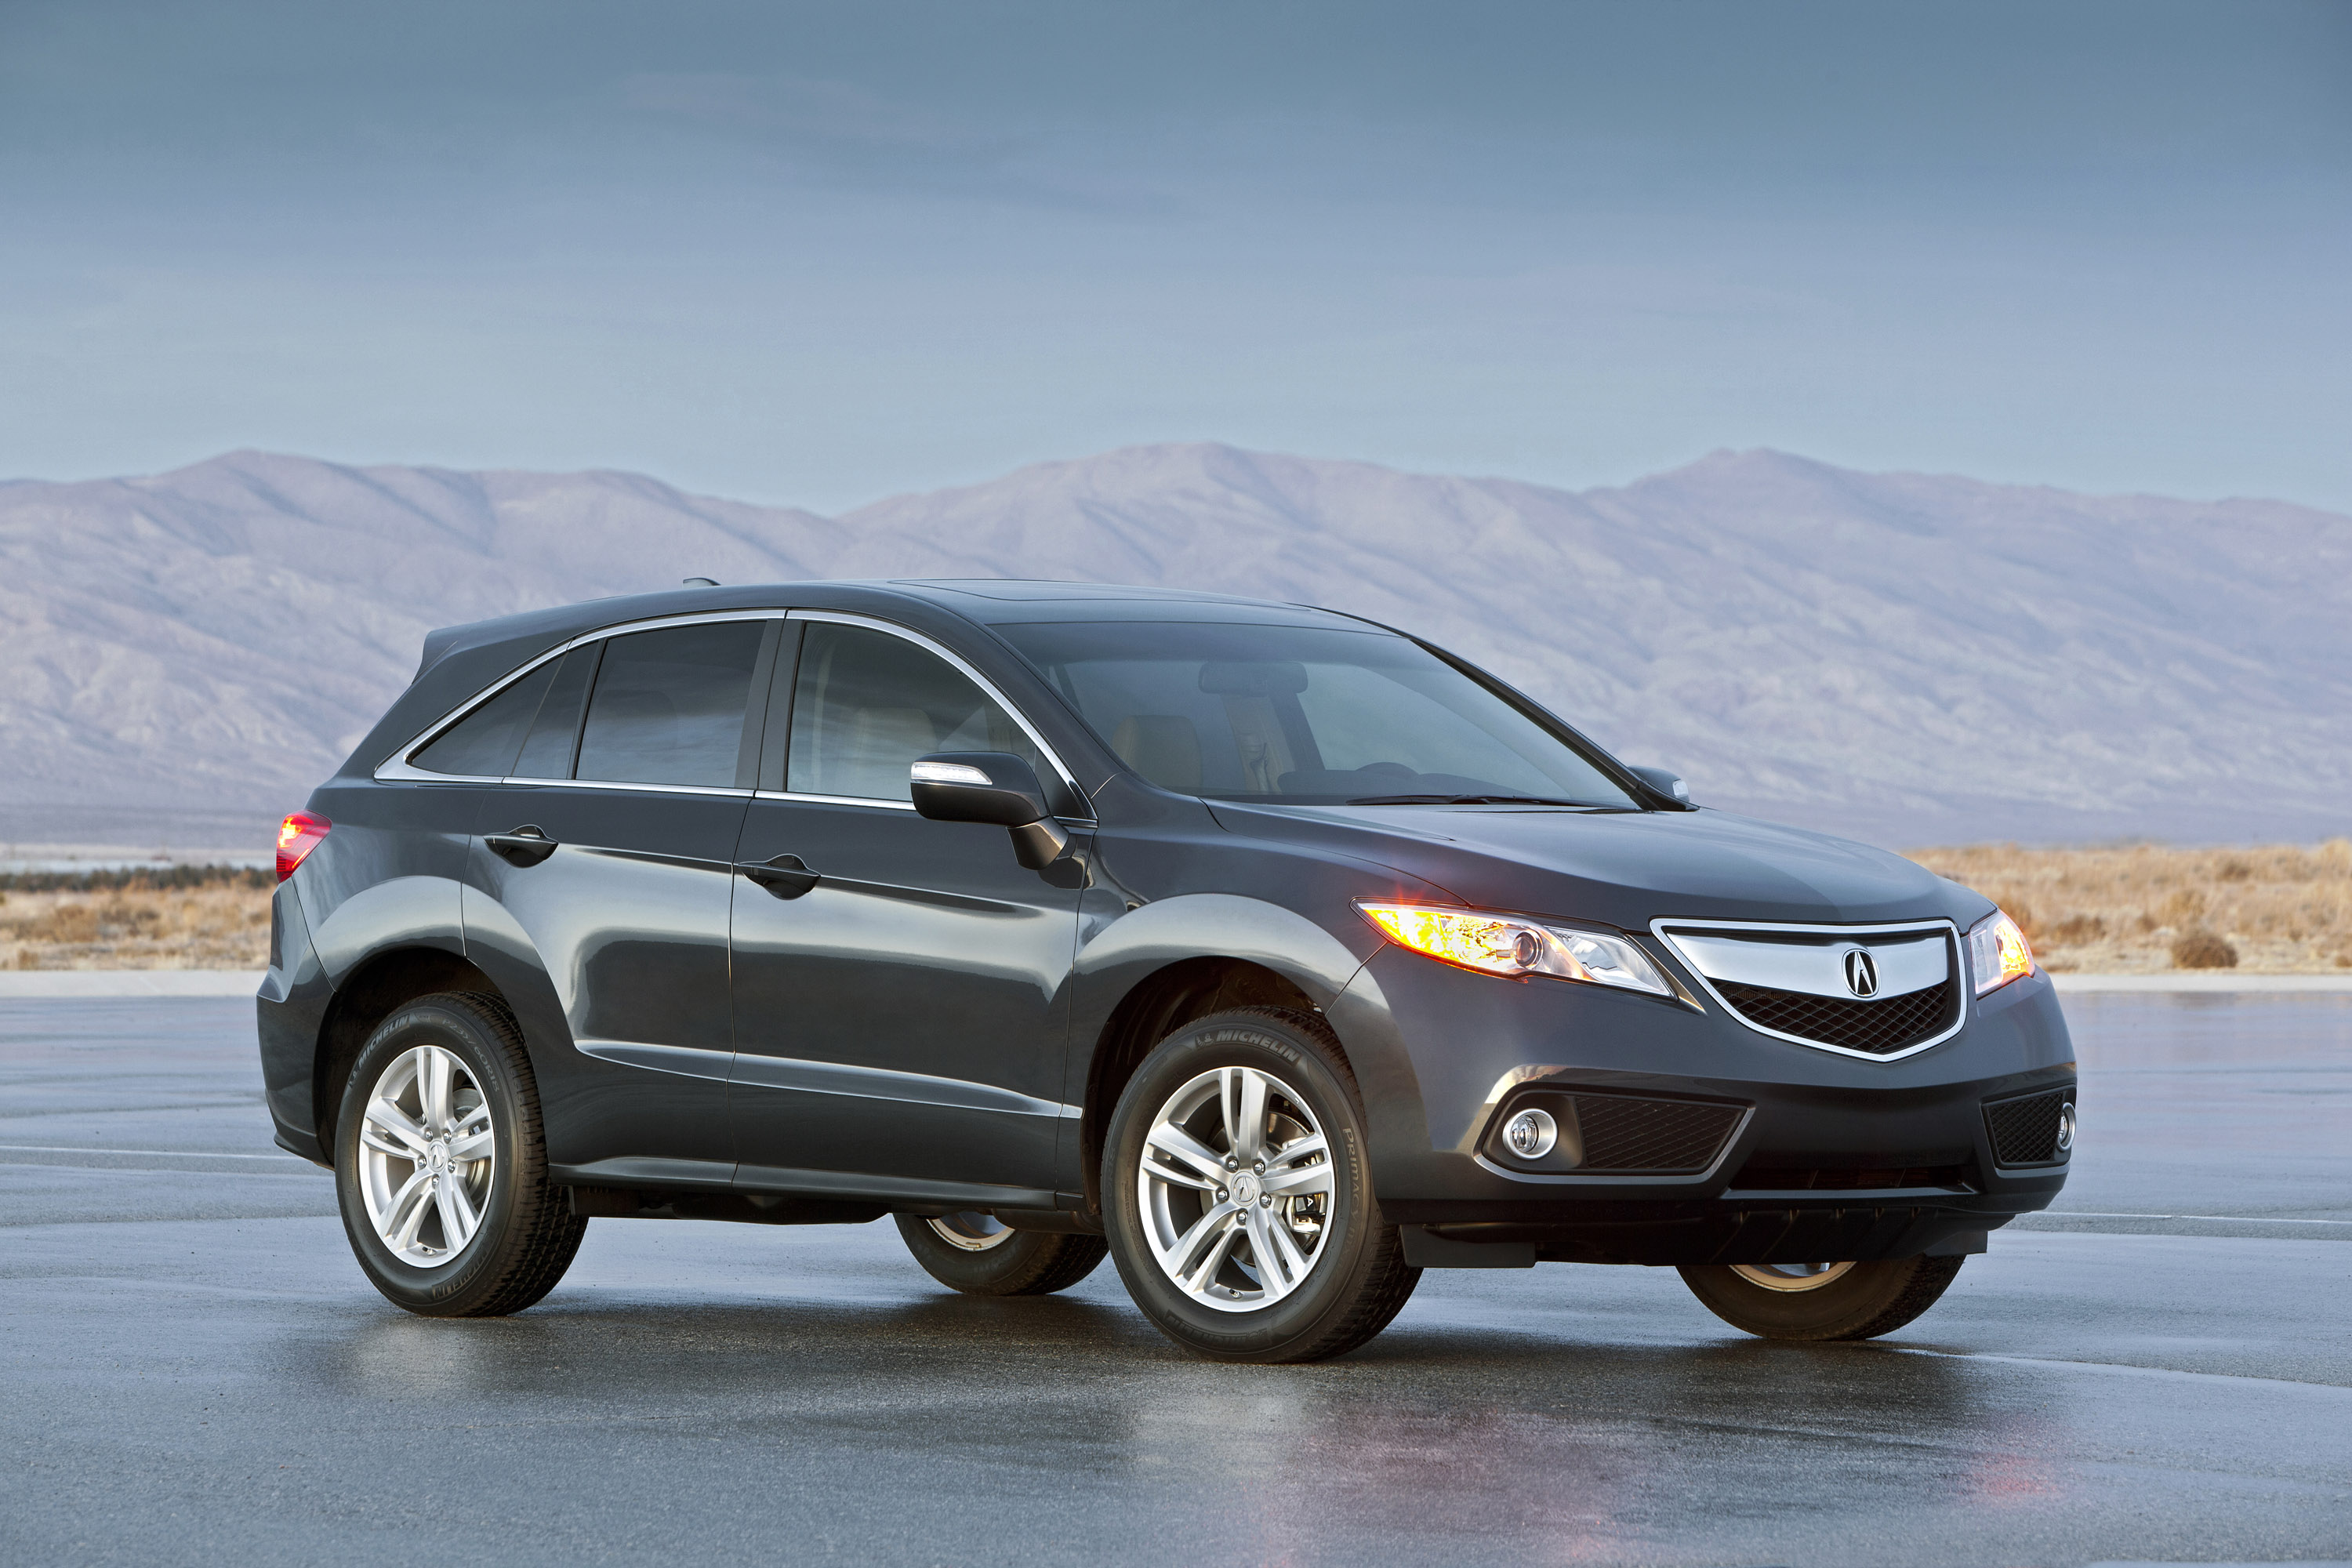 rear file commons right wikimedia acura rdx wiki